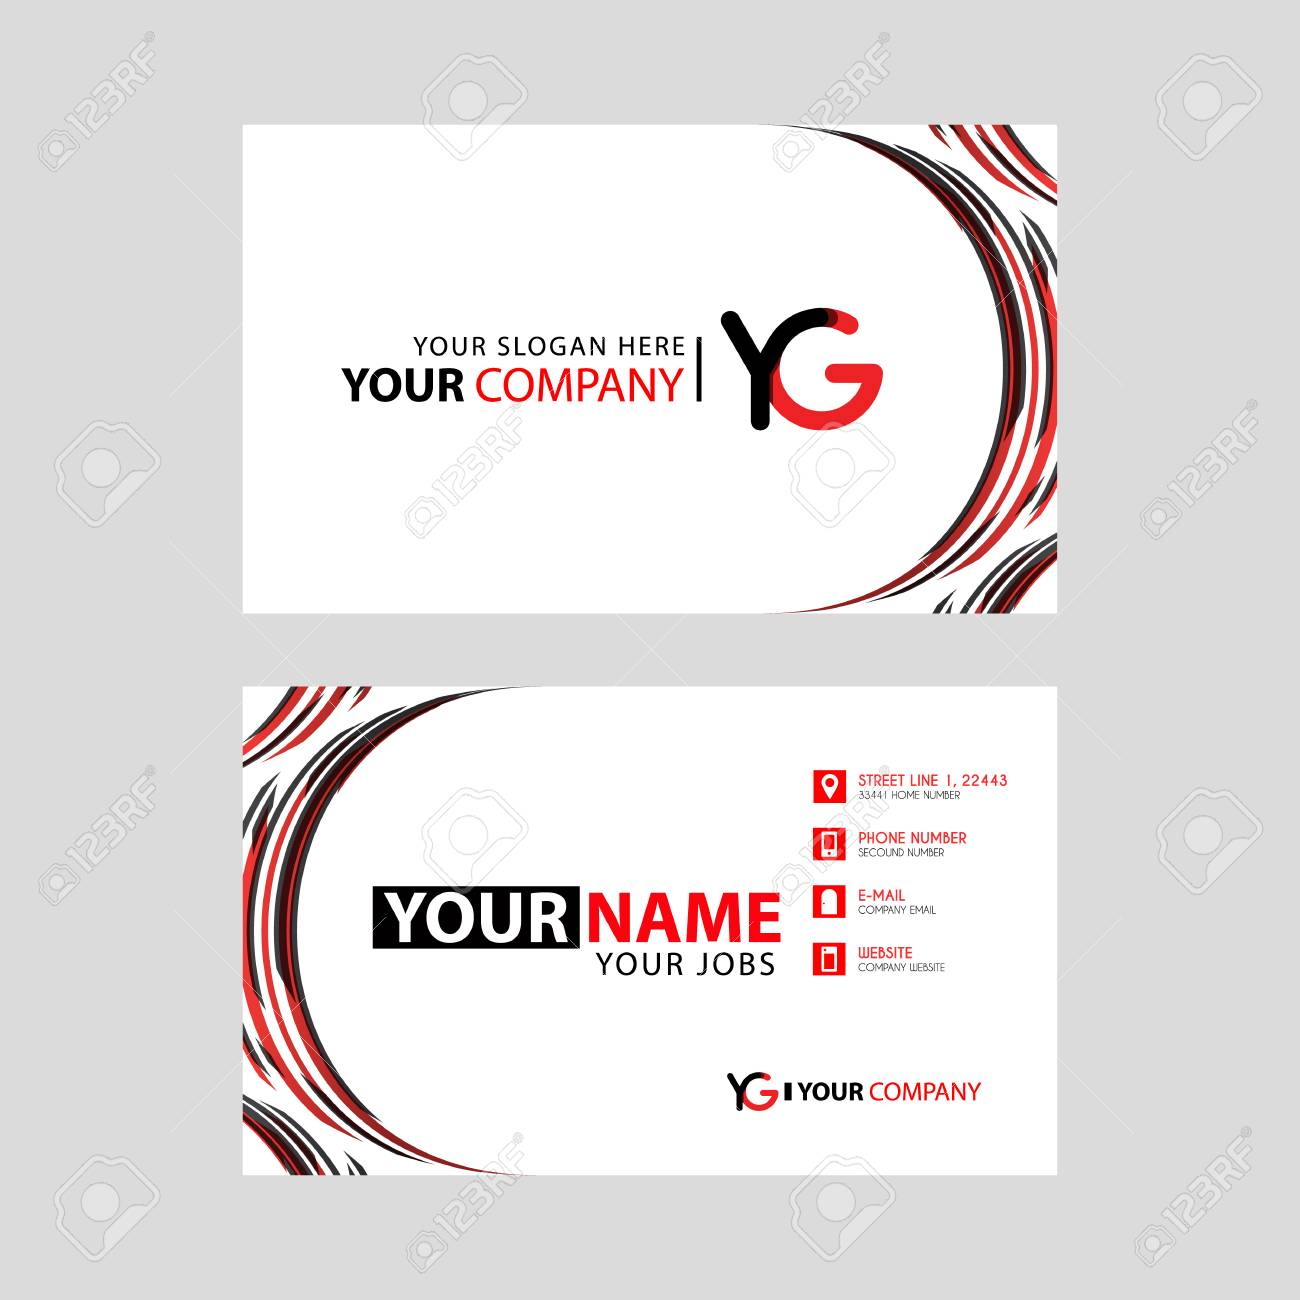 Letter YG logo in black which is included in a name card or simple business card with a horizontal template. - 106169158